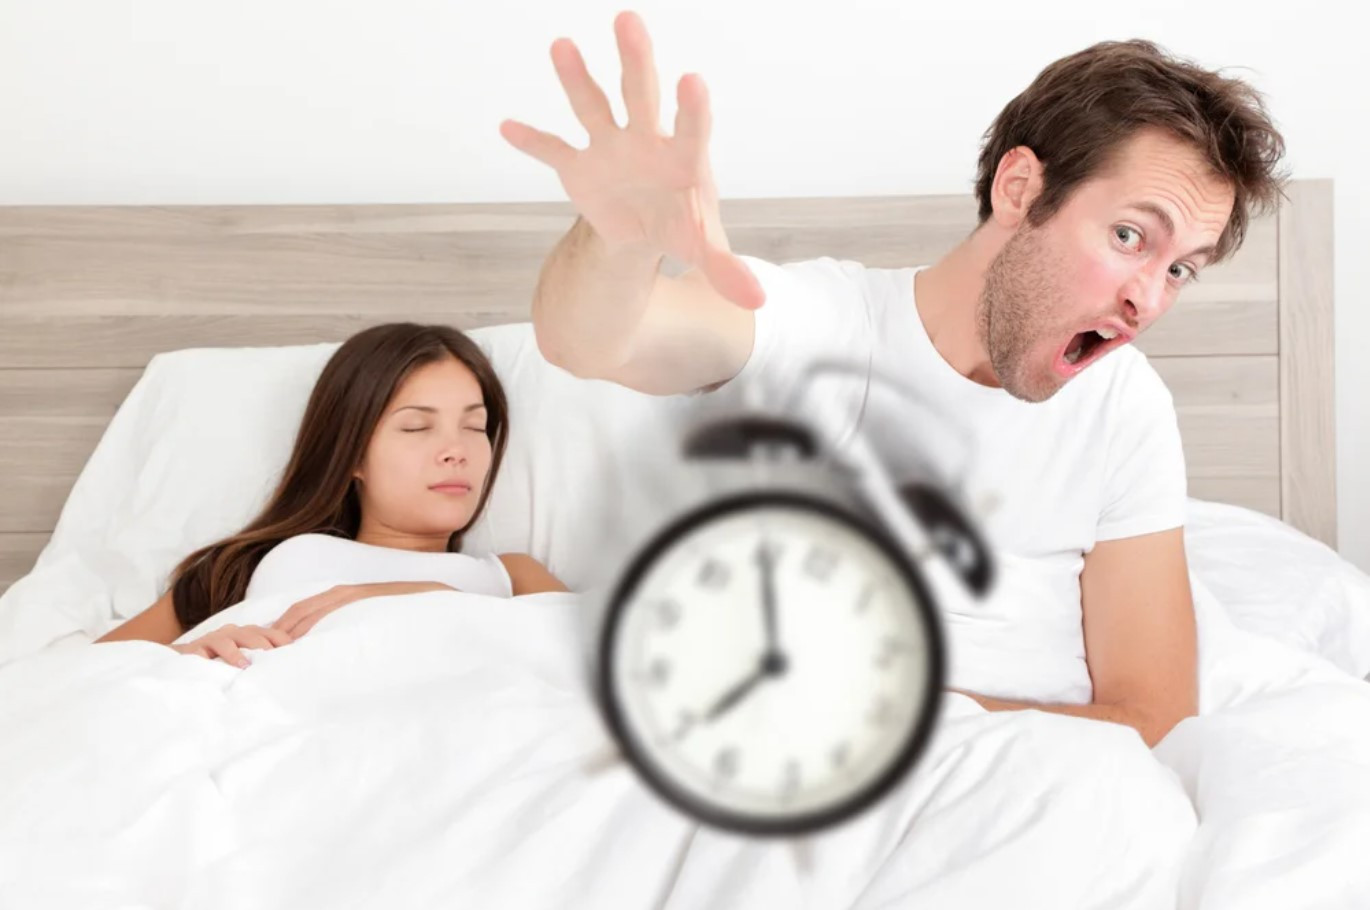 man angry for clock